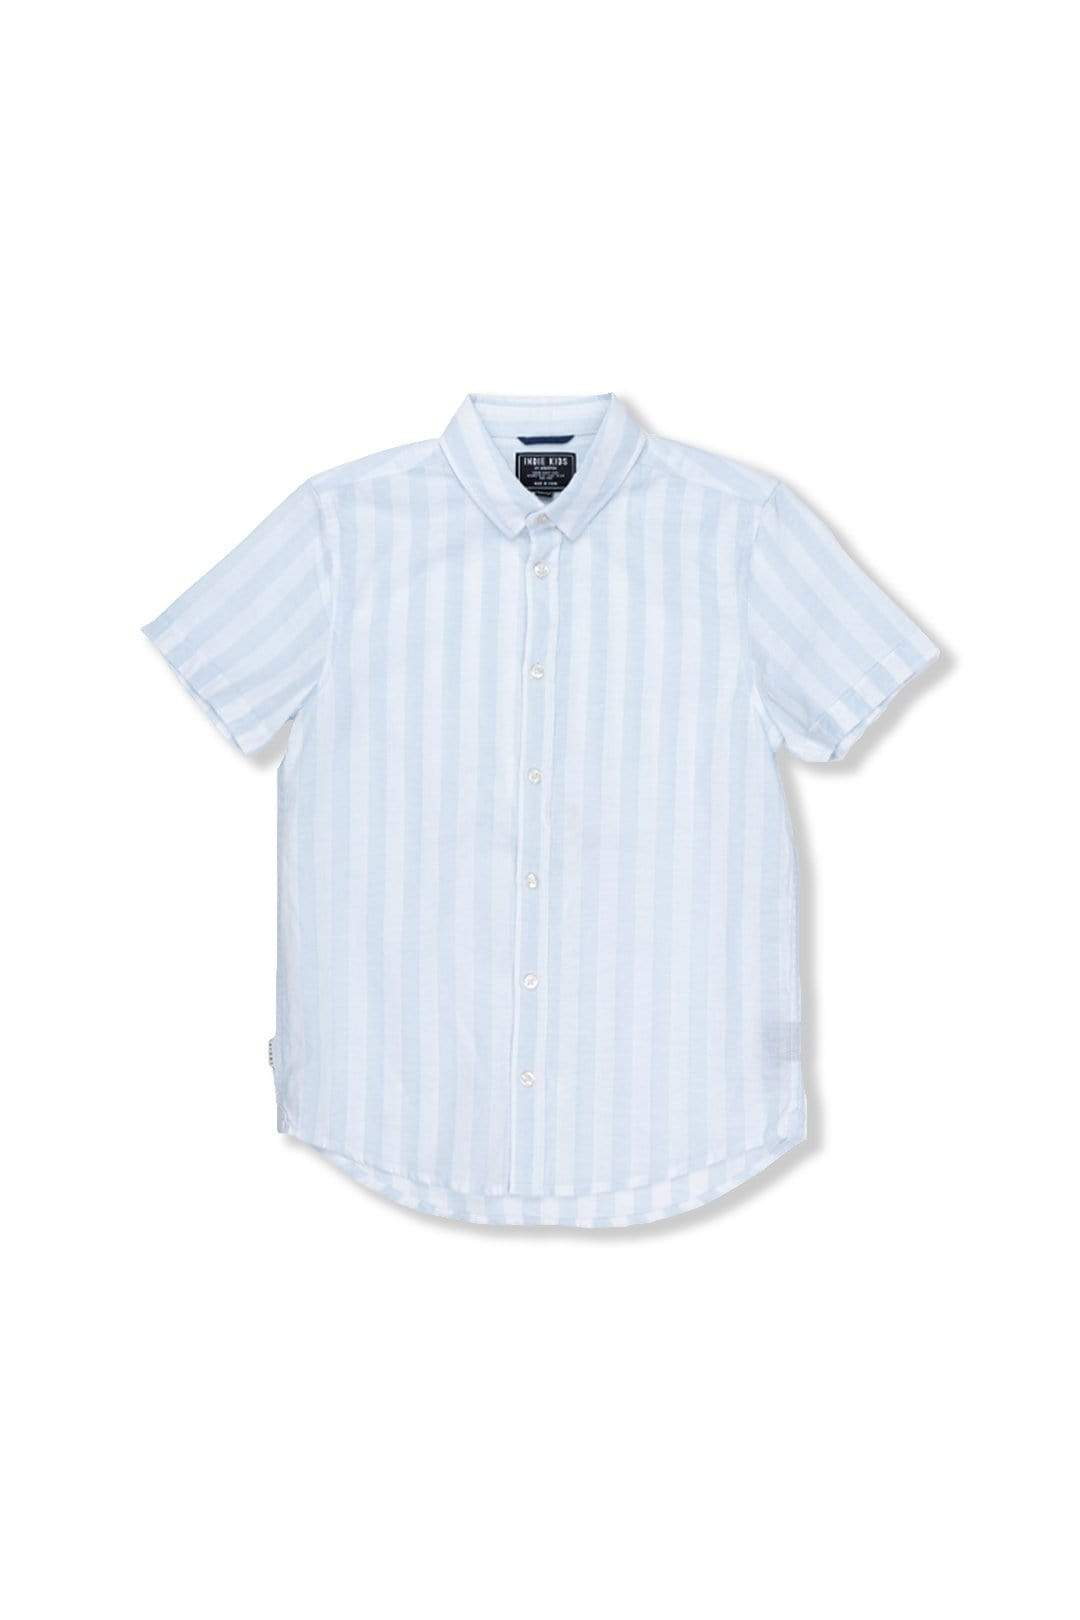 Linen Stripe SS Shirt - Light Blue